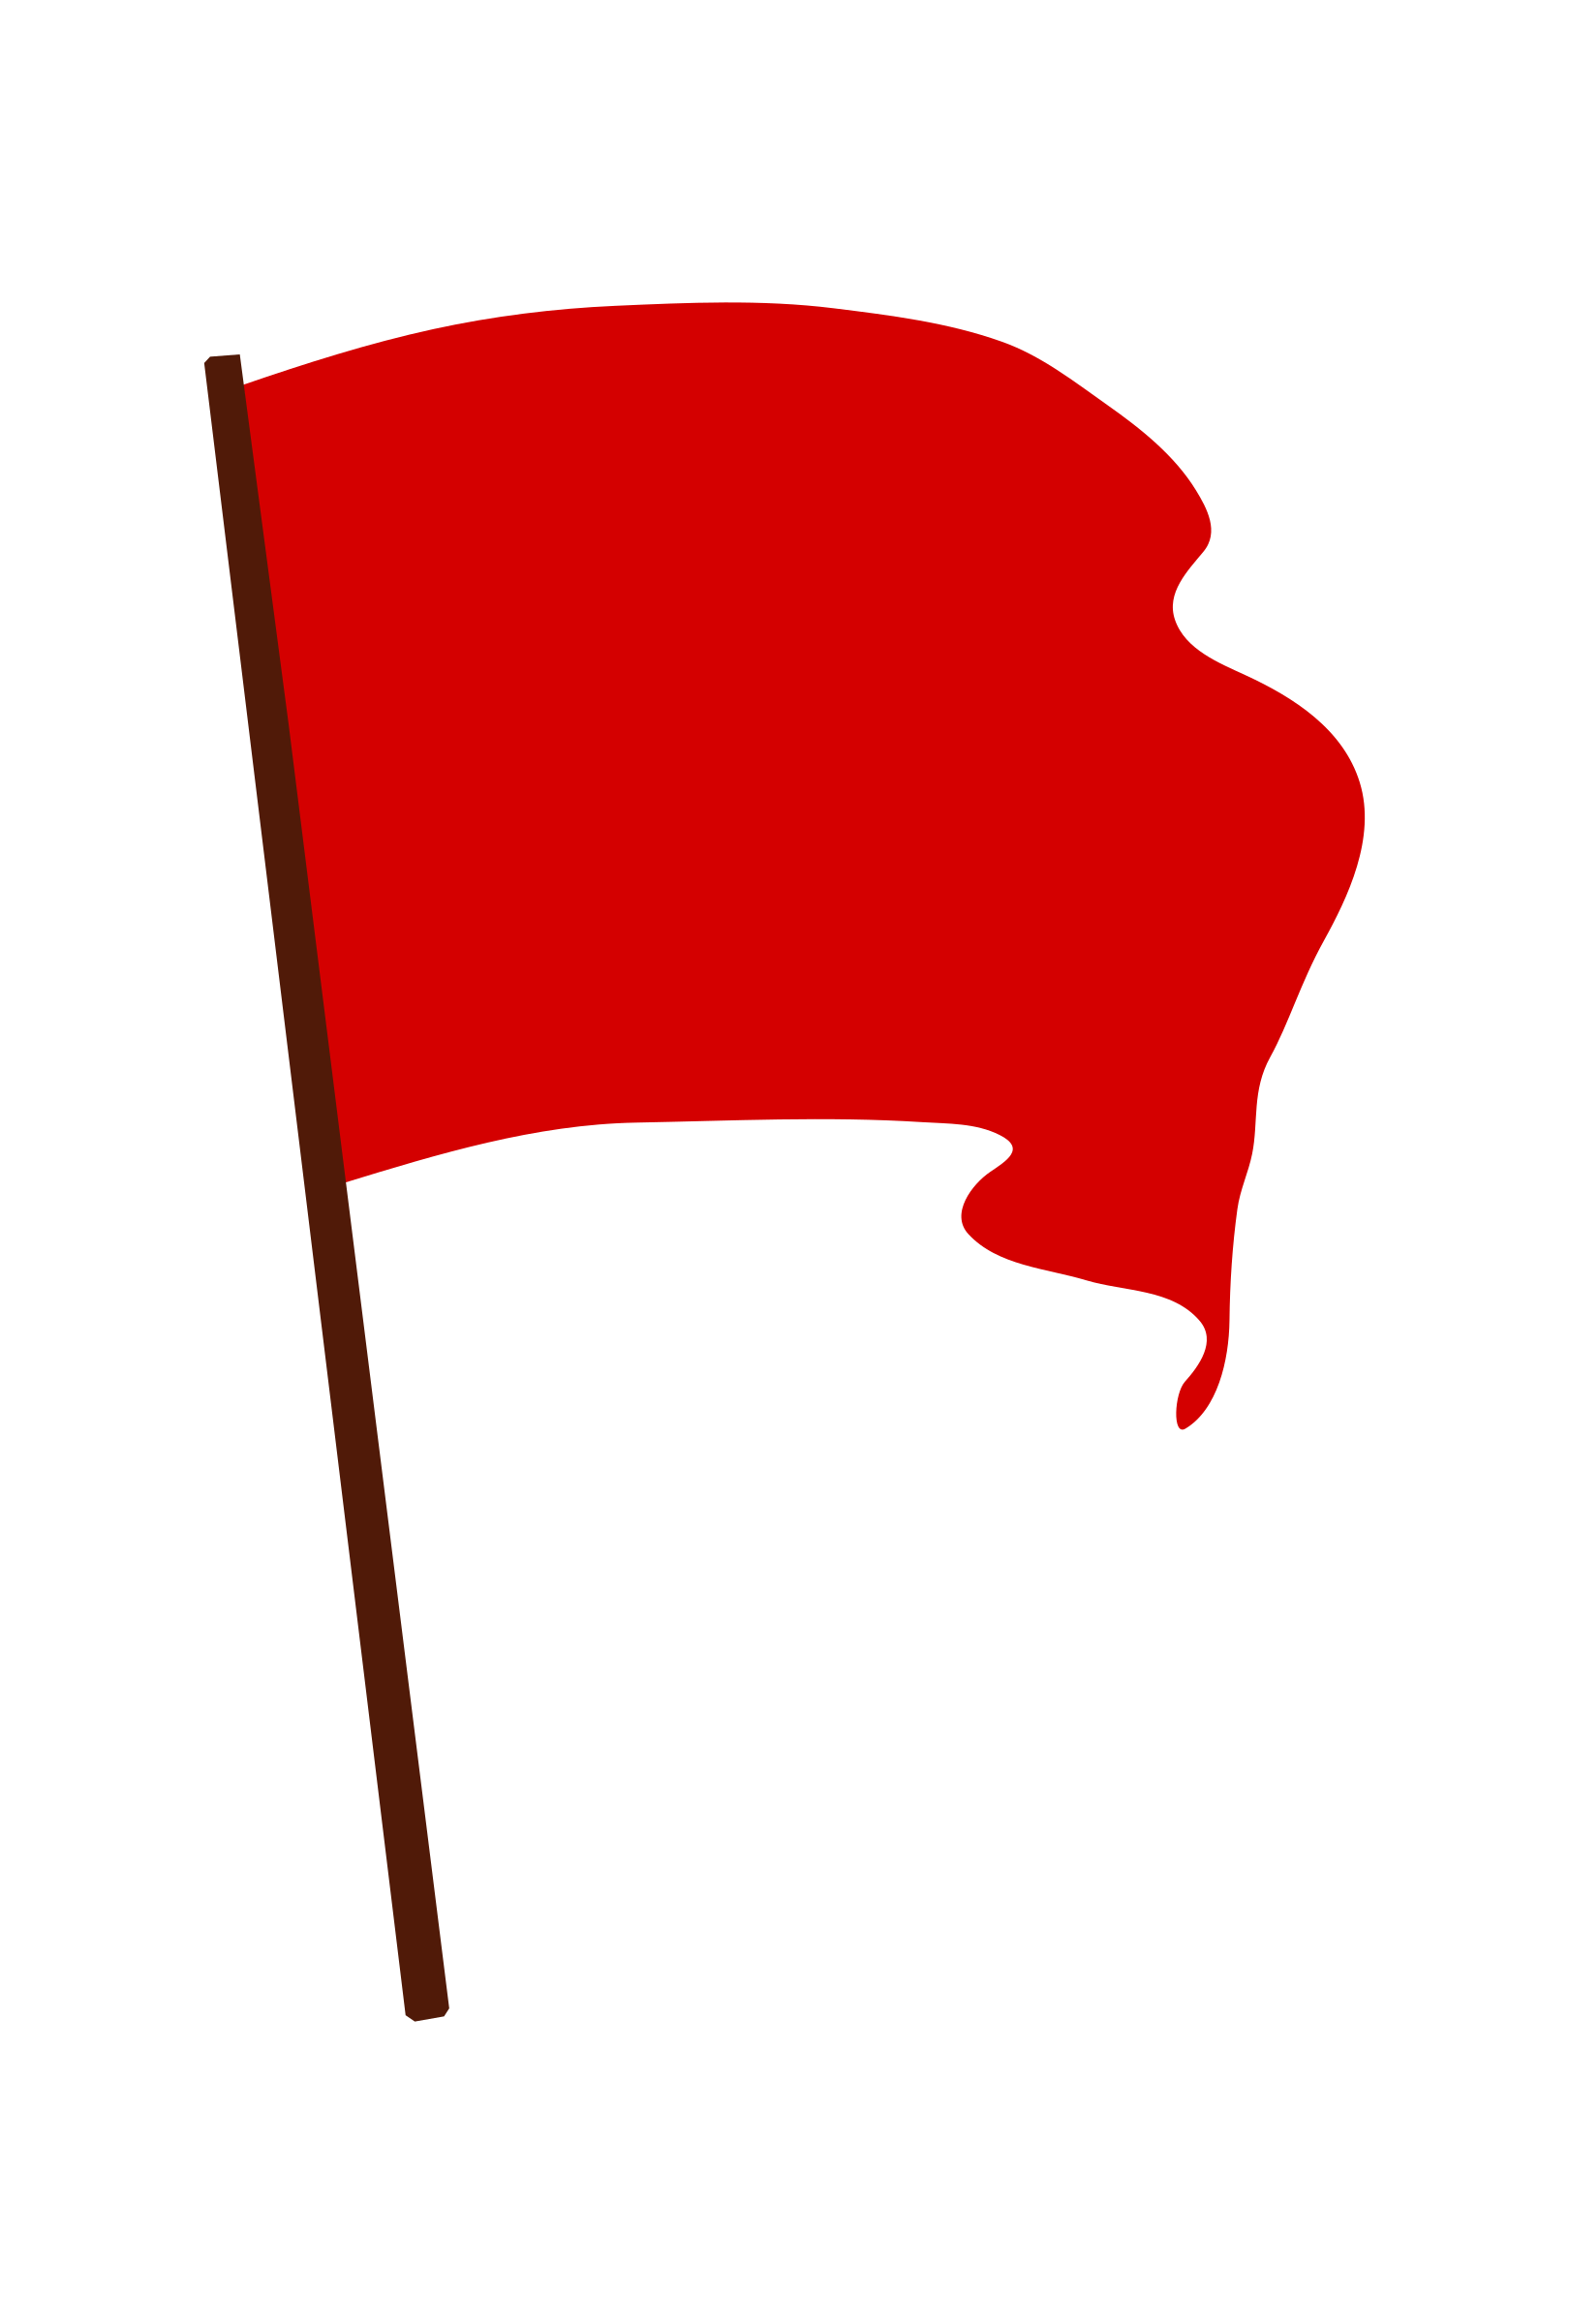 Red flag png. Clipart waving big image